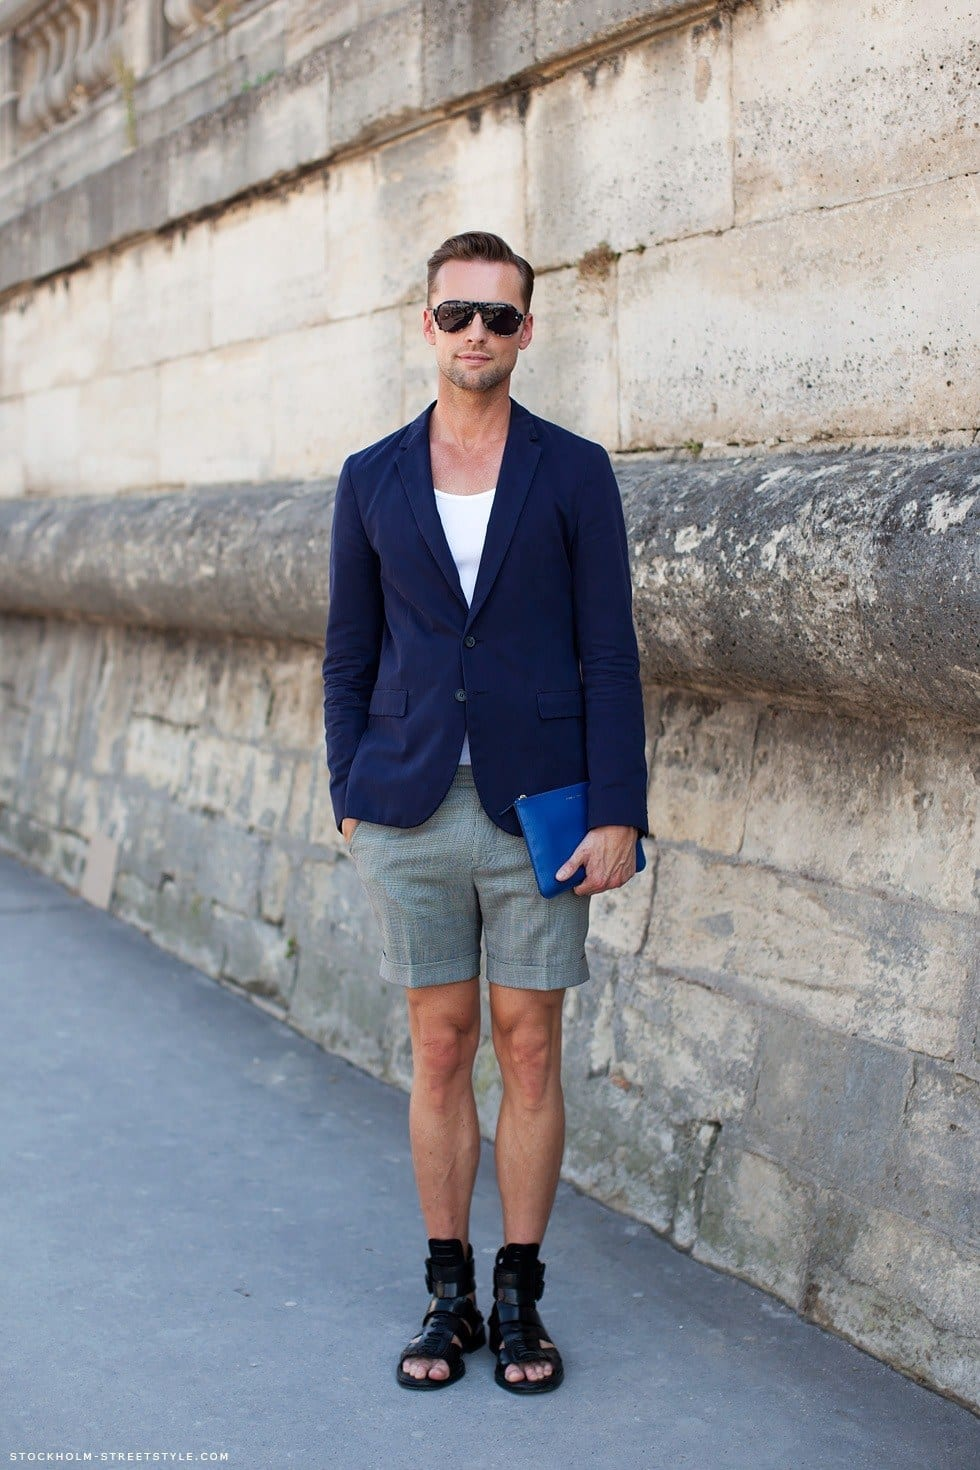 Bermuda fashion ideas for men